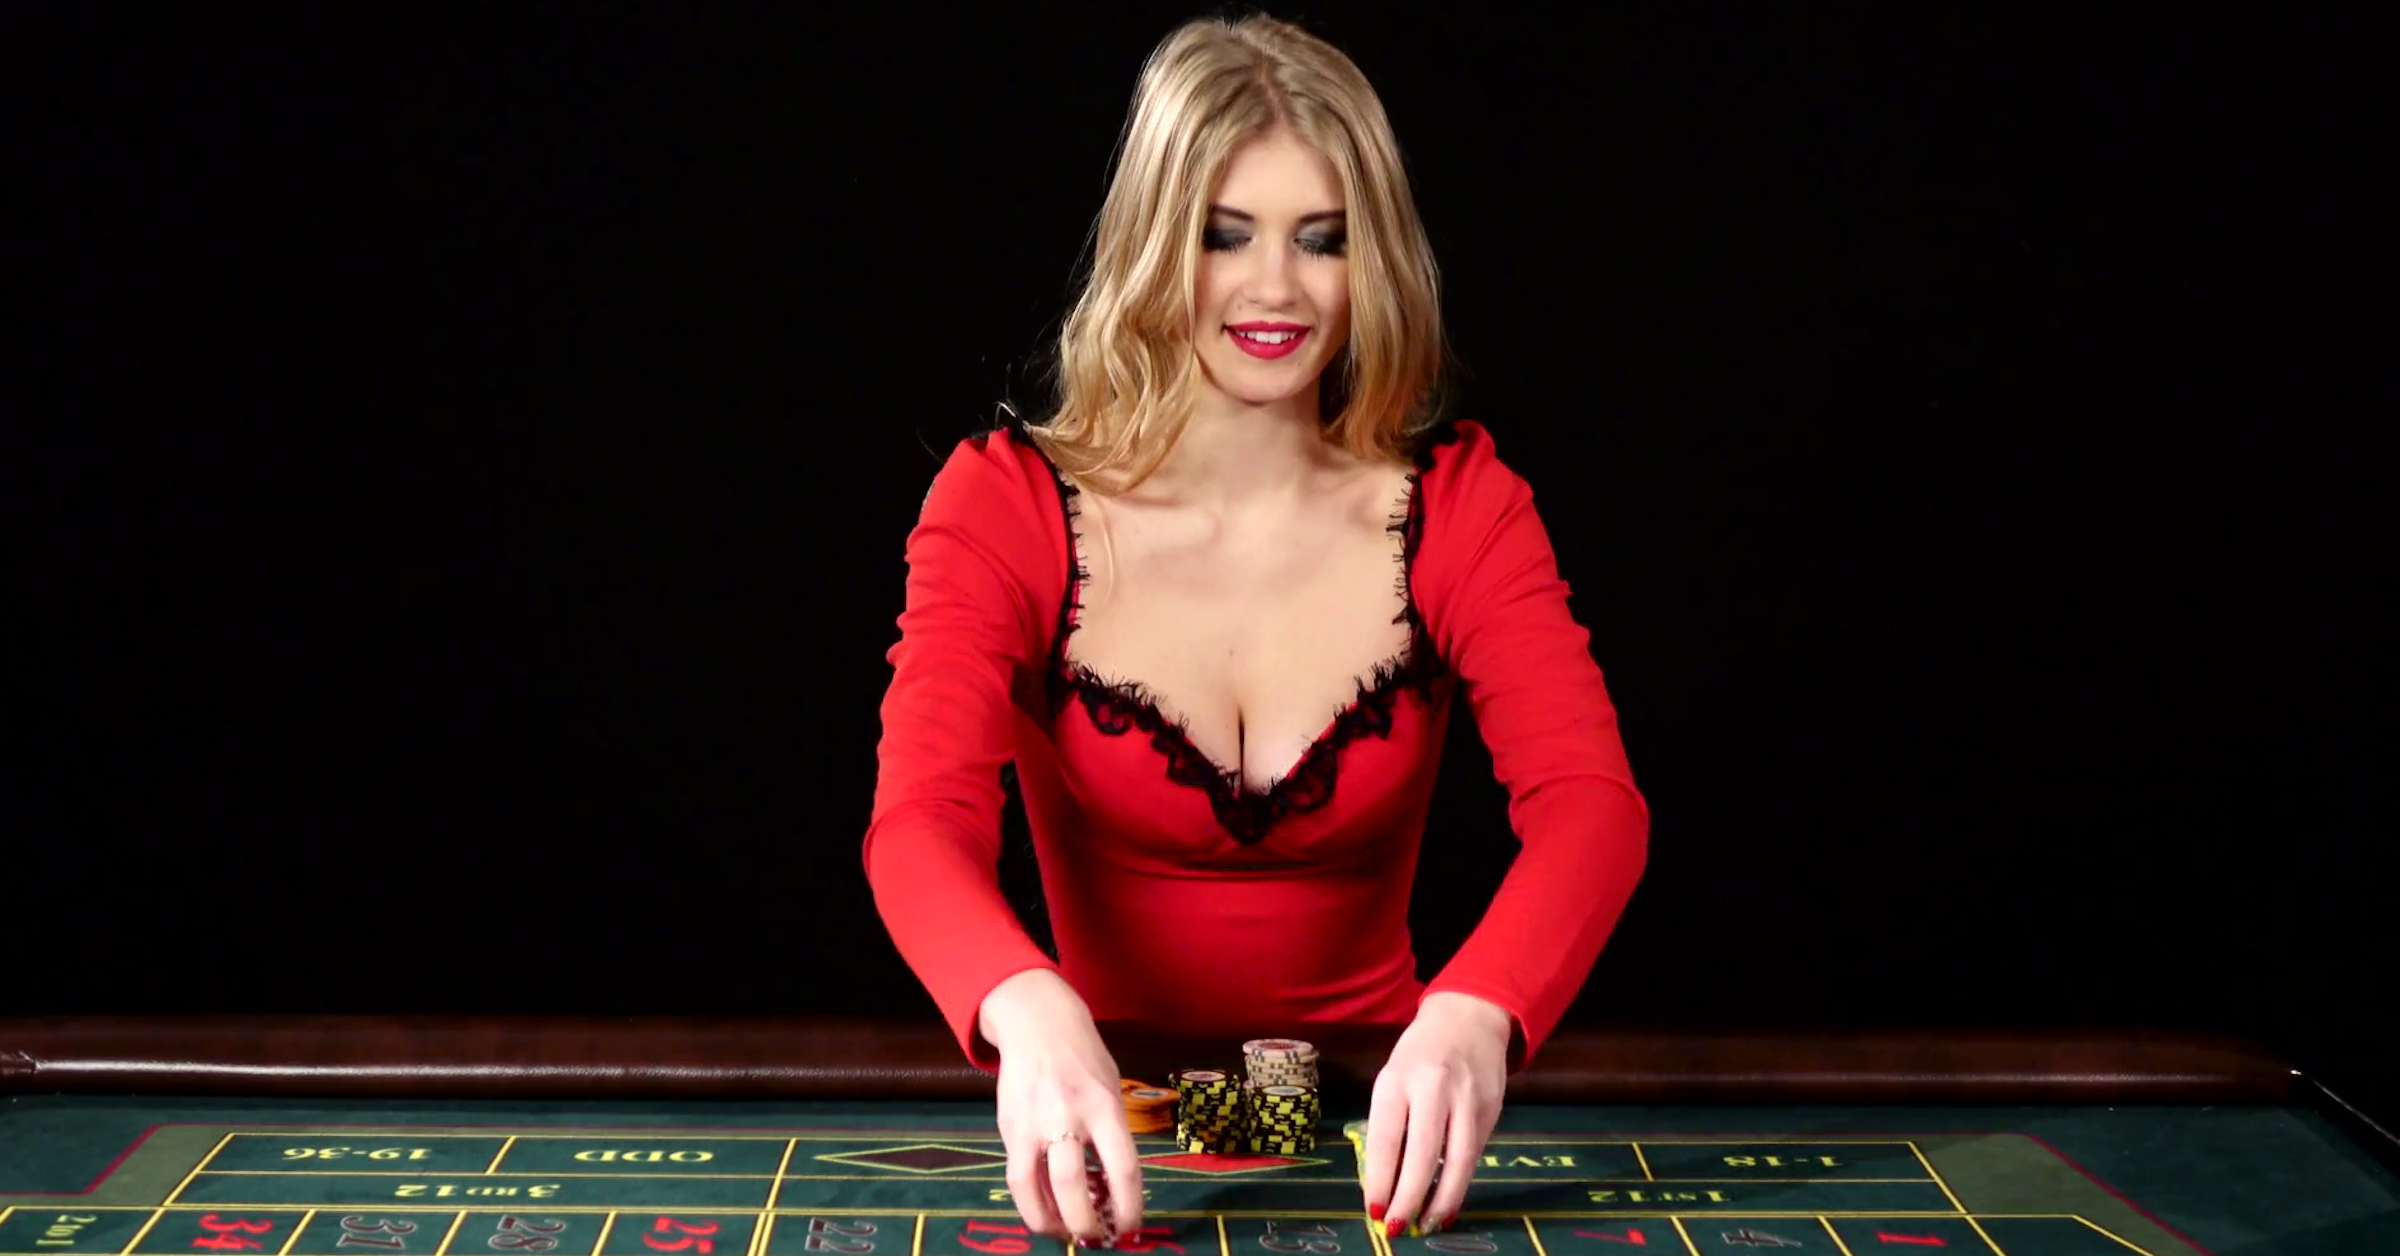 the-girl-in-the-red-dress-lost-in-the-casino-black_r8_y0hdug_thumbnail-full01_.